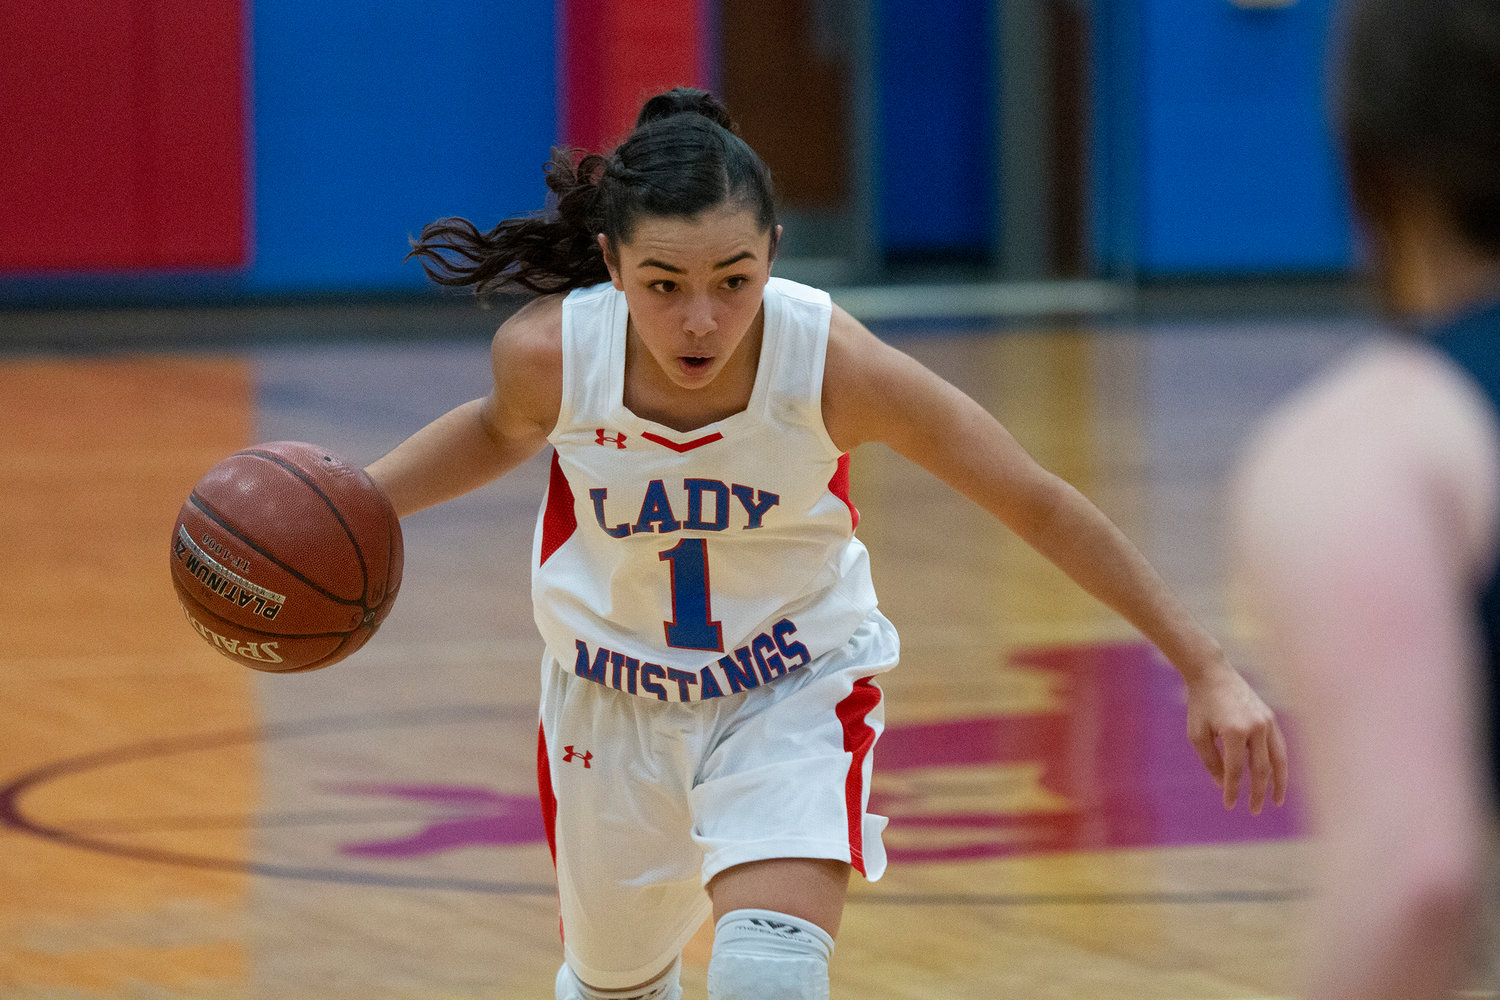 Mady Velasquez (1) dribbles down the court in a fast break.